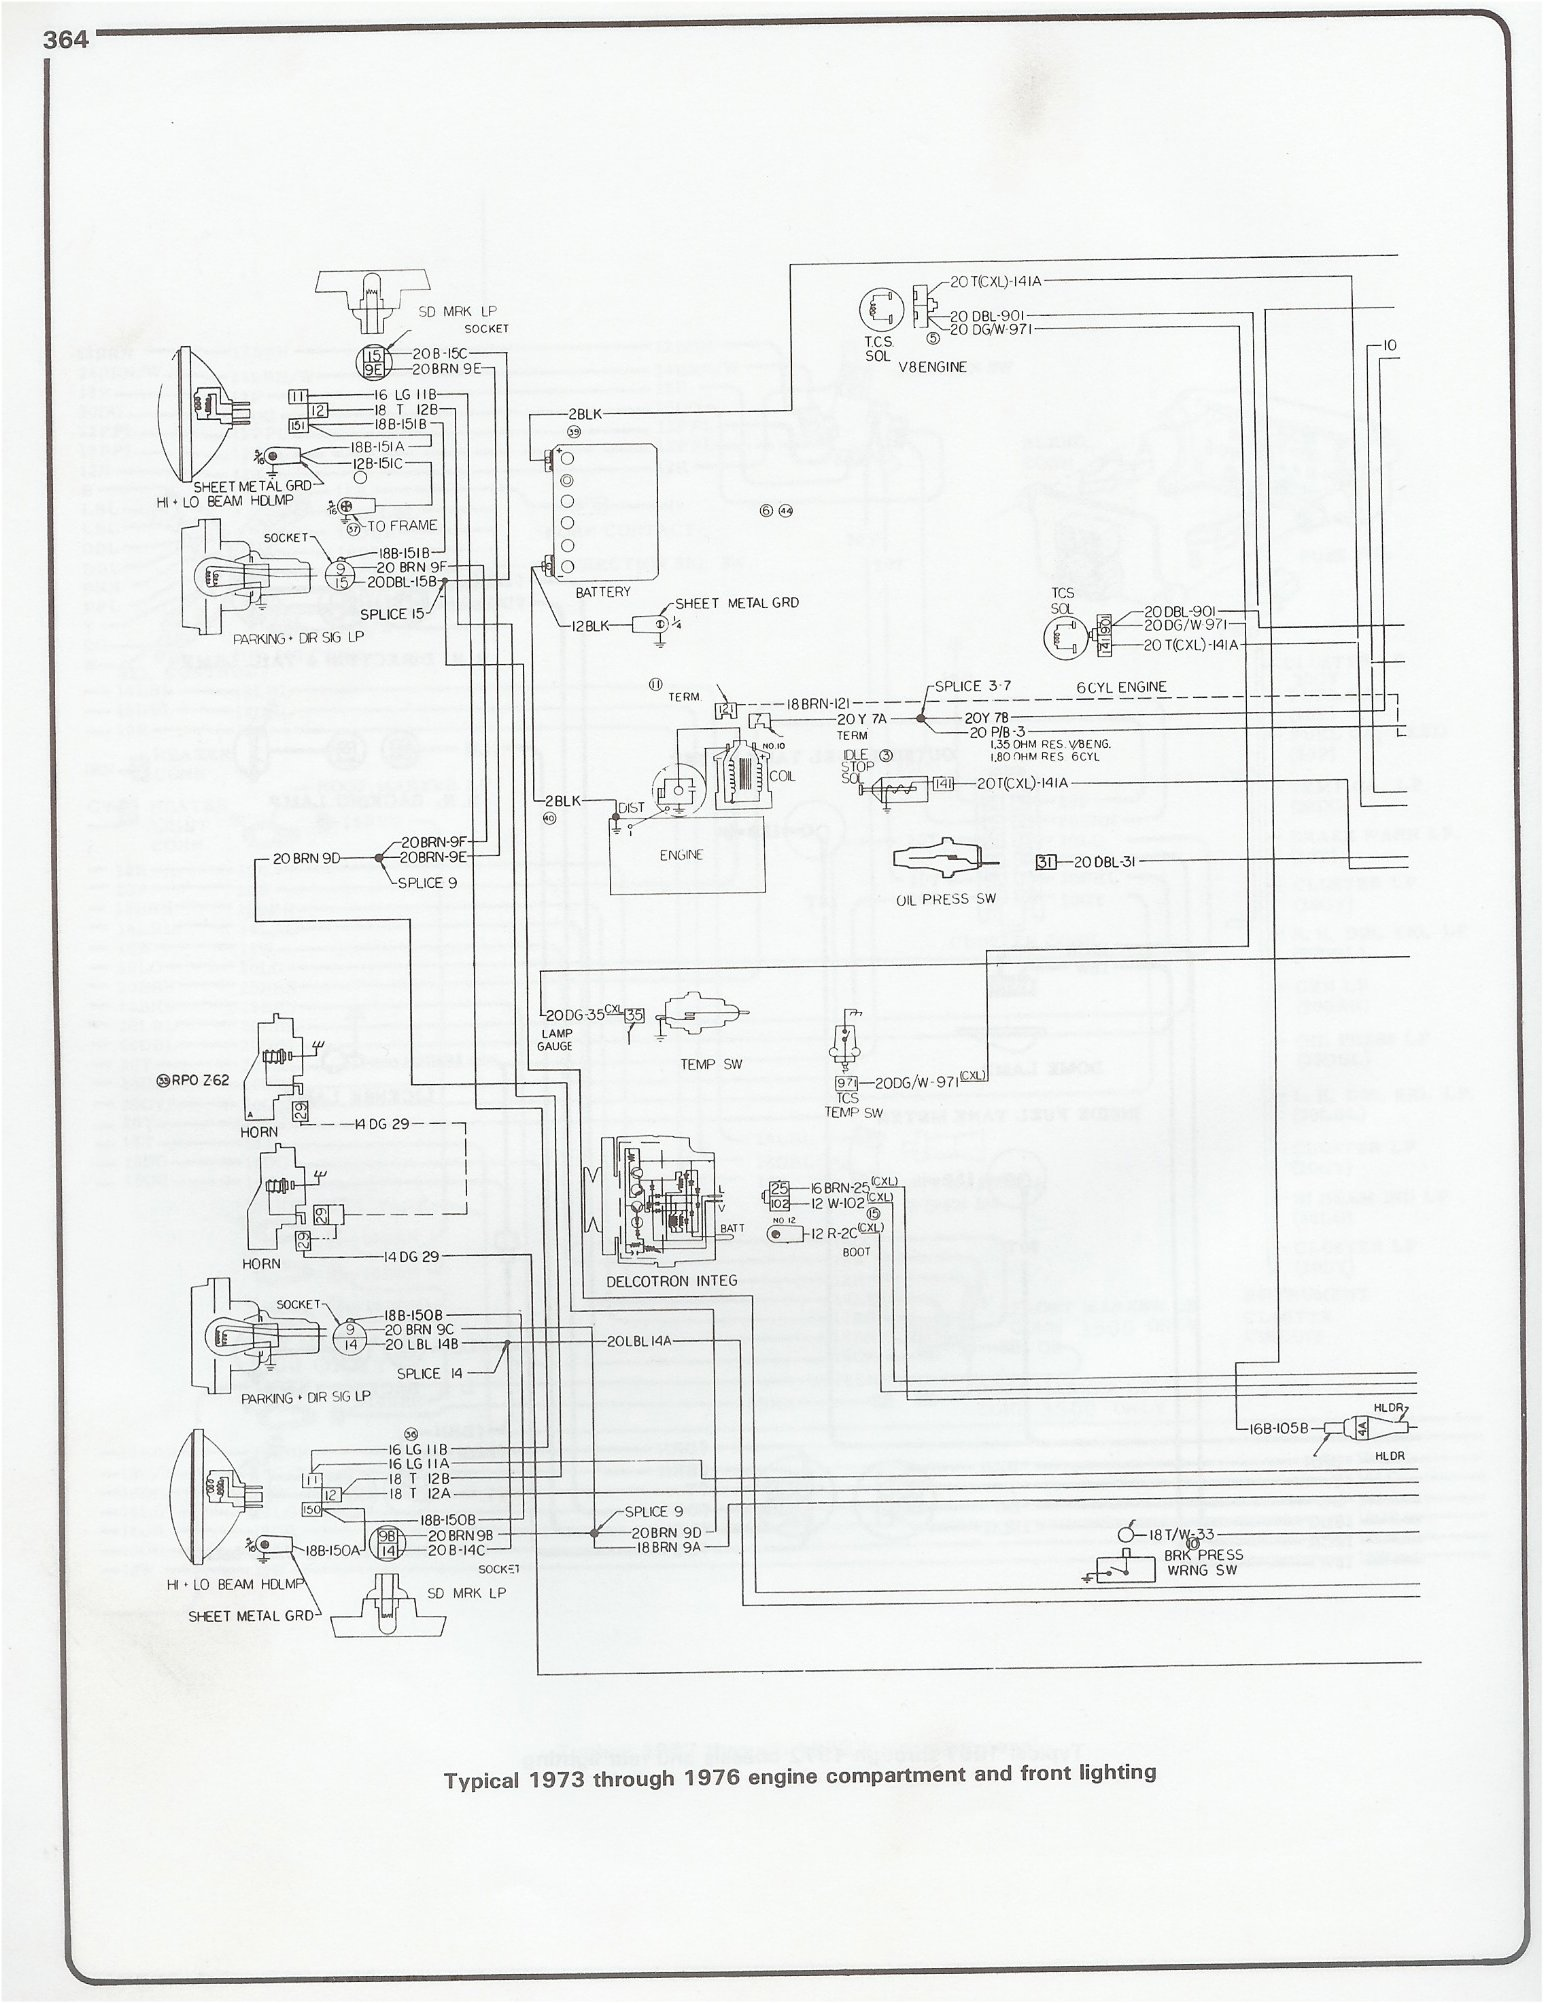 82 Corvette Fuse Panel Diagram Free Download Wiring Library 2000 Chevy Camaro 76 C10 Data Schema 1977 Harness Complete 73 87